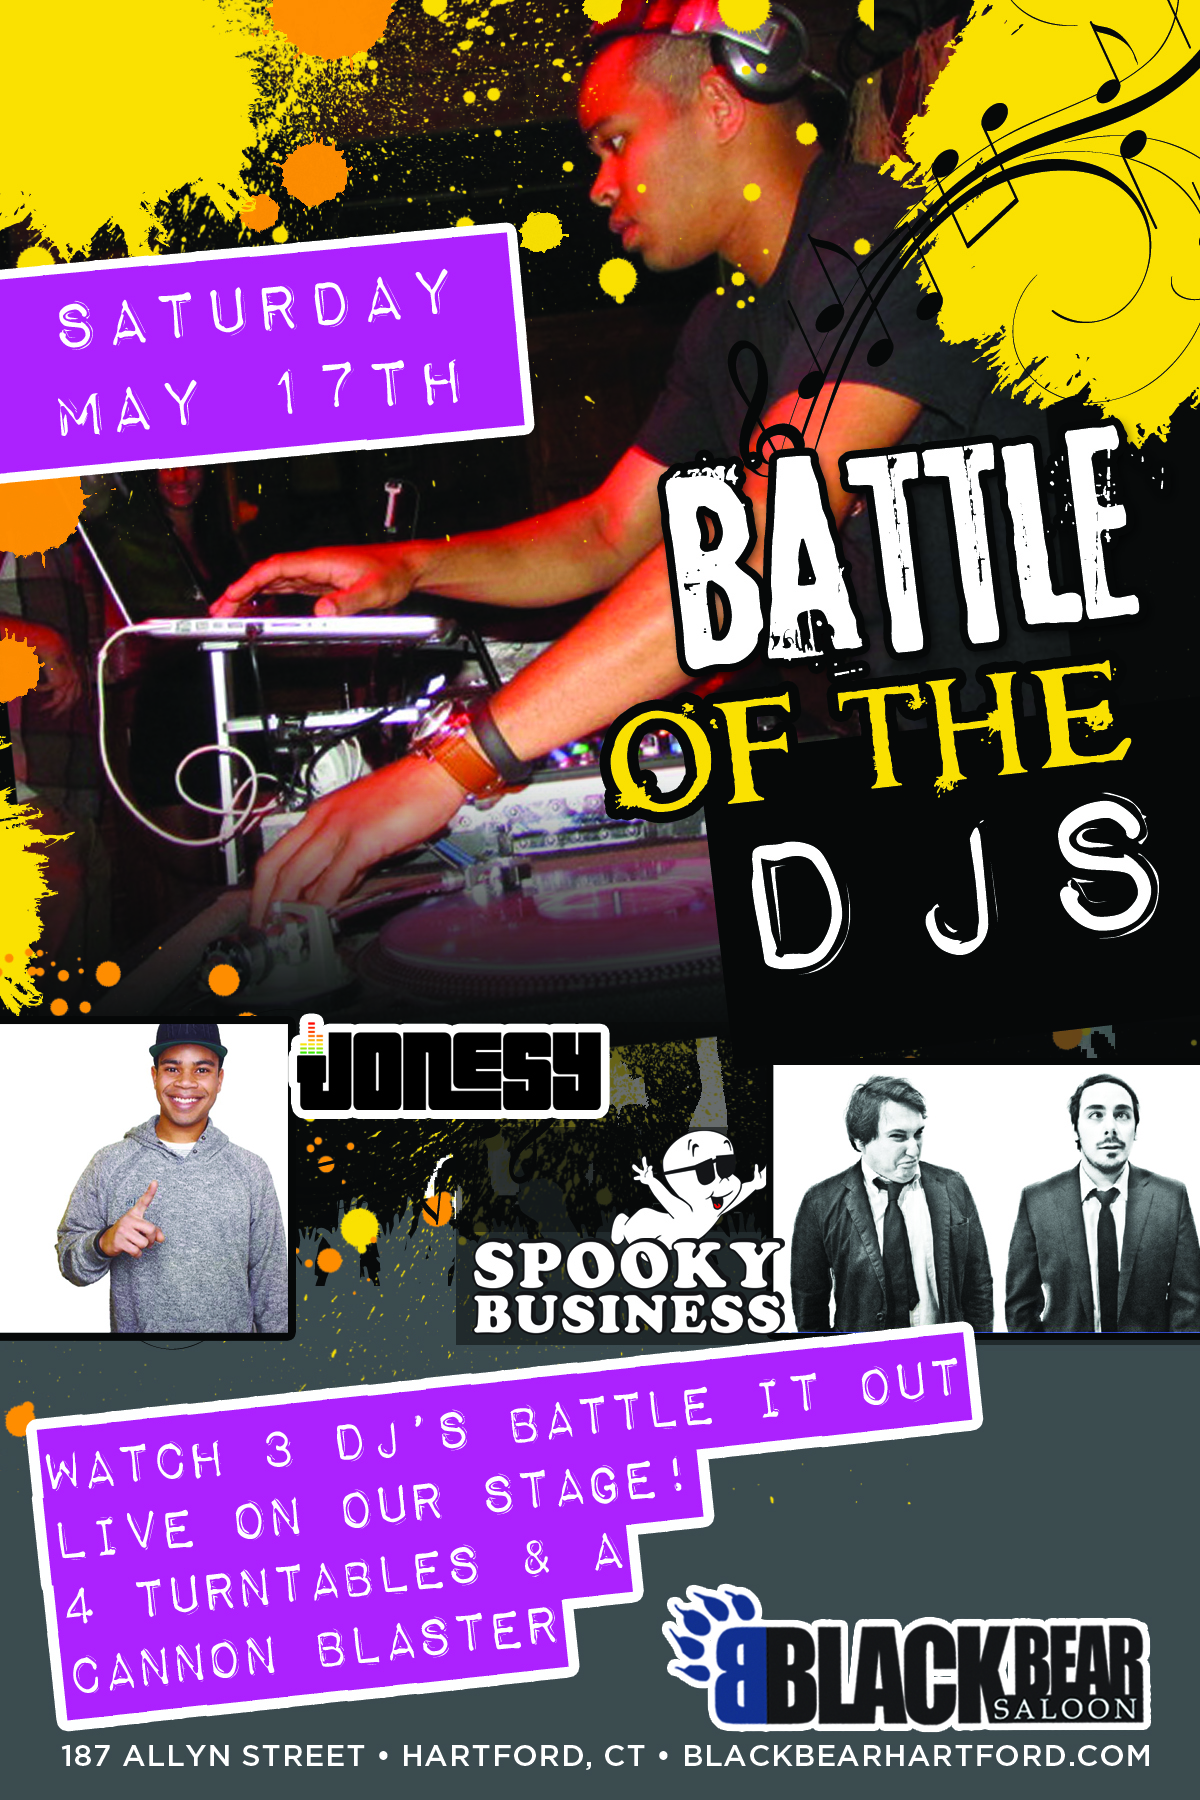 SATURDAY MAY 17TH meet me in the Capitol City, Hartford CT for A LIVE DJ BATTLE ON STAGE. 4 TURNTABLES, 3 DJS & A CLUB CANNON. MUSIC BY JONESY &  SPOOKY BUSINESS  of Buffalo NY. 9:30pm. No Cover.